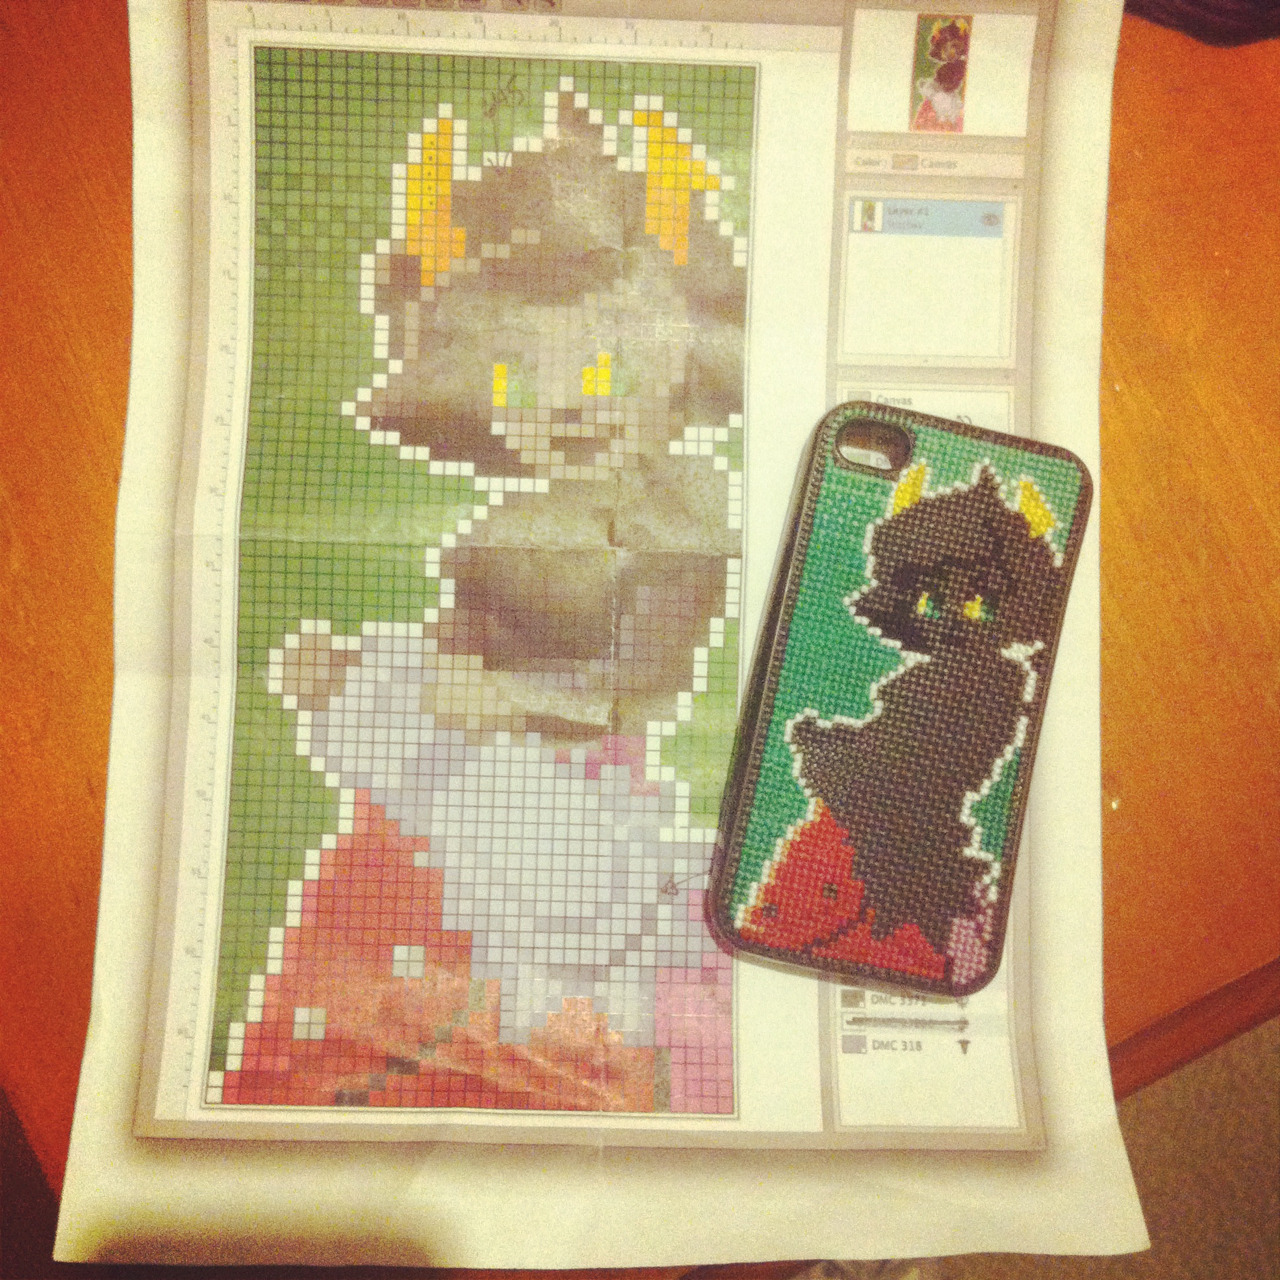 I was home sick yesterday, so I made some progress on my Kanaya iPhone case.  Although today I wish I'd cross-stitched less enthusiastically: my fingers are sore!